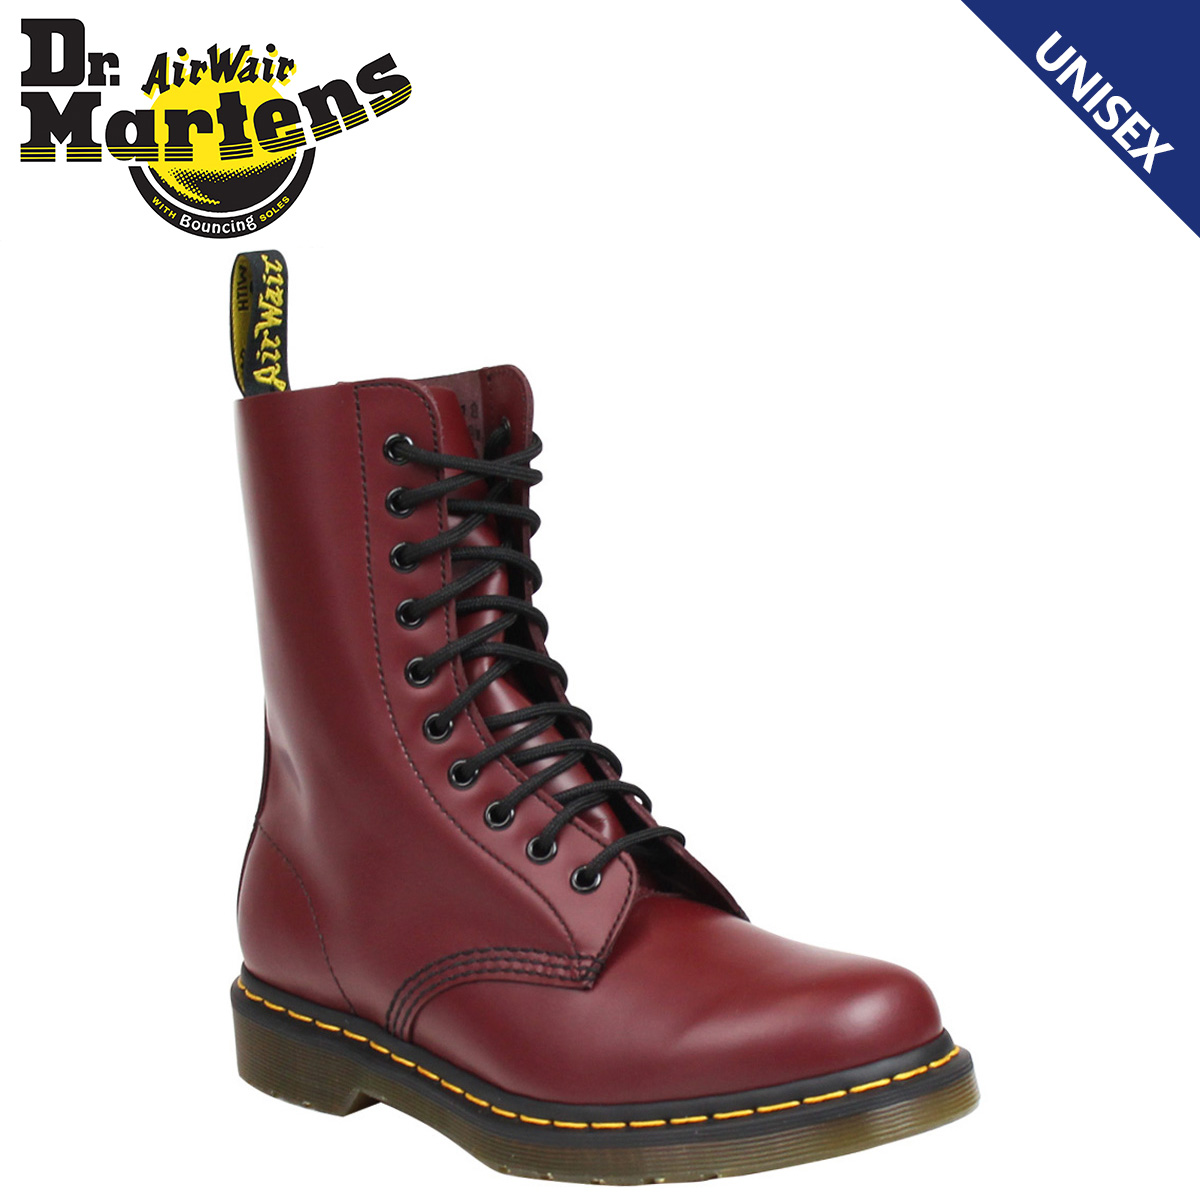 Dr. Martens Dr.Martens 1490 men's ladies 10 EYE BOOT boots 10 hole boots  R11857600 cherry red [10/16 new in stock]